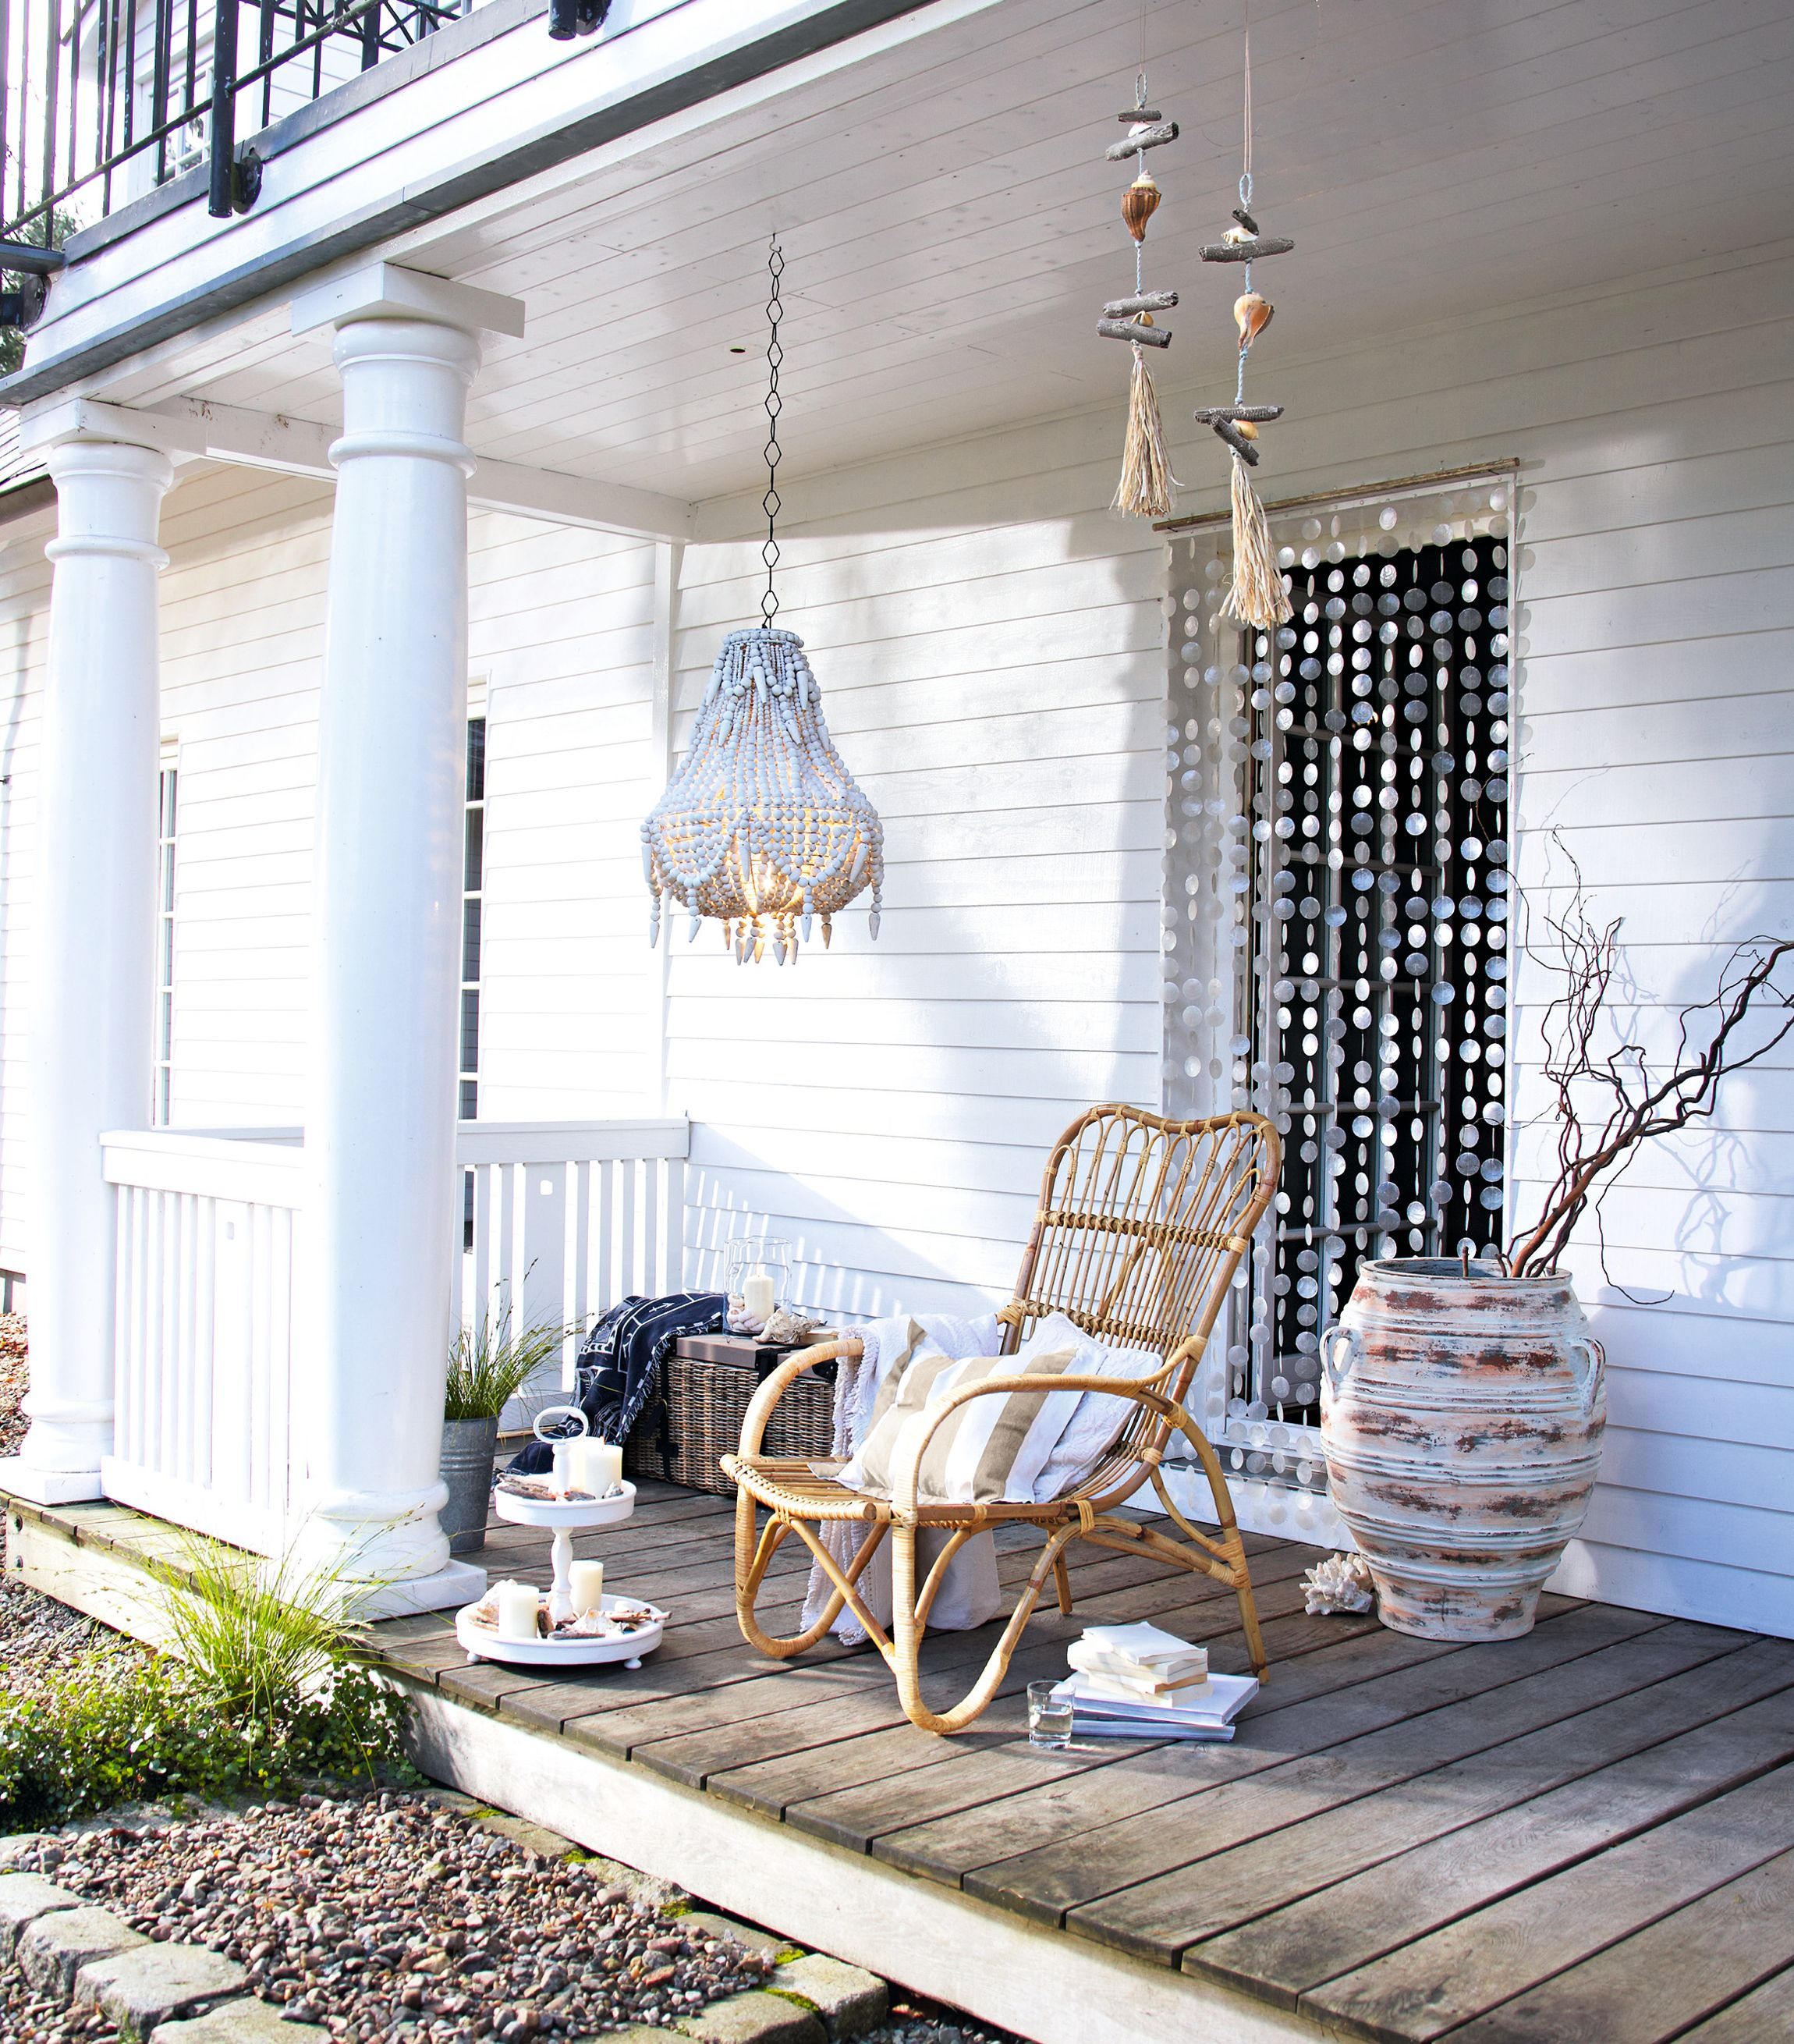 sessel finley mit muschelvorhang cappiz terrasse garten loberon seaside feeling pinterest. Black Bedroom Furniture Sets. Home Design Ideas